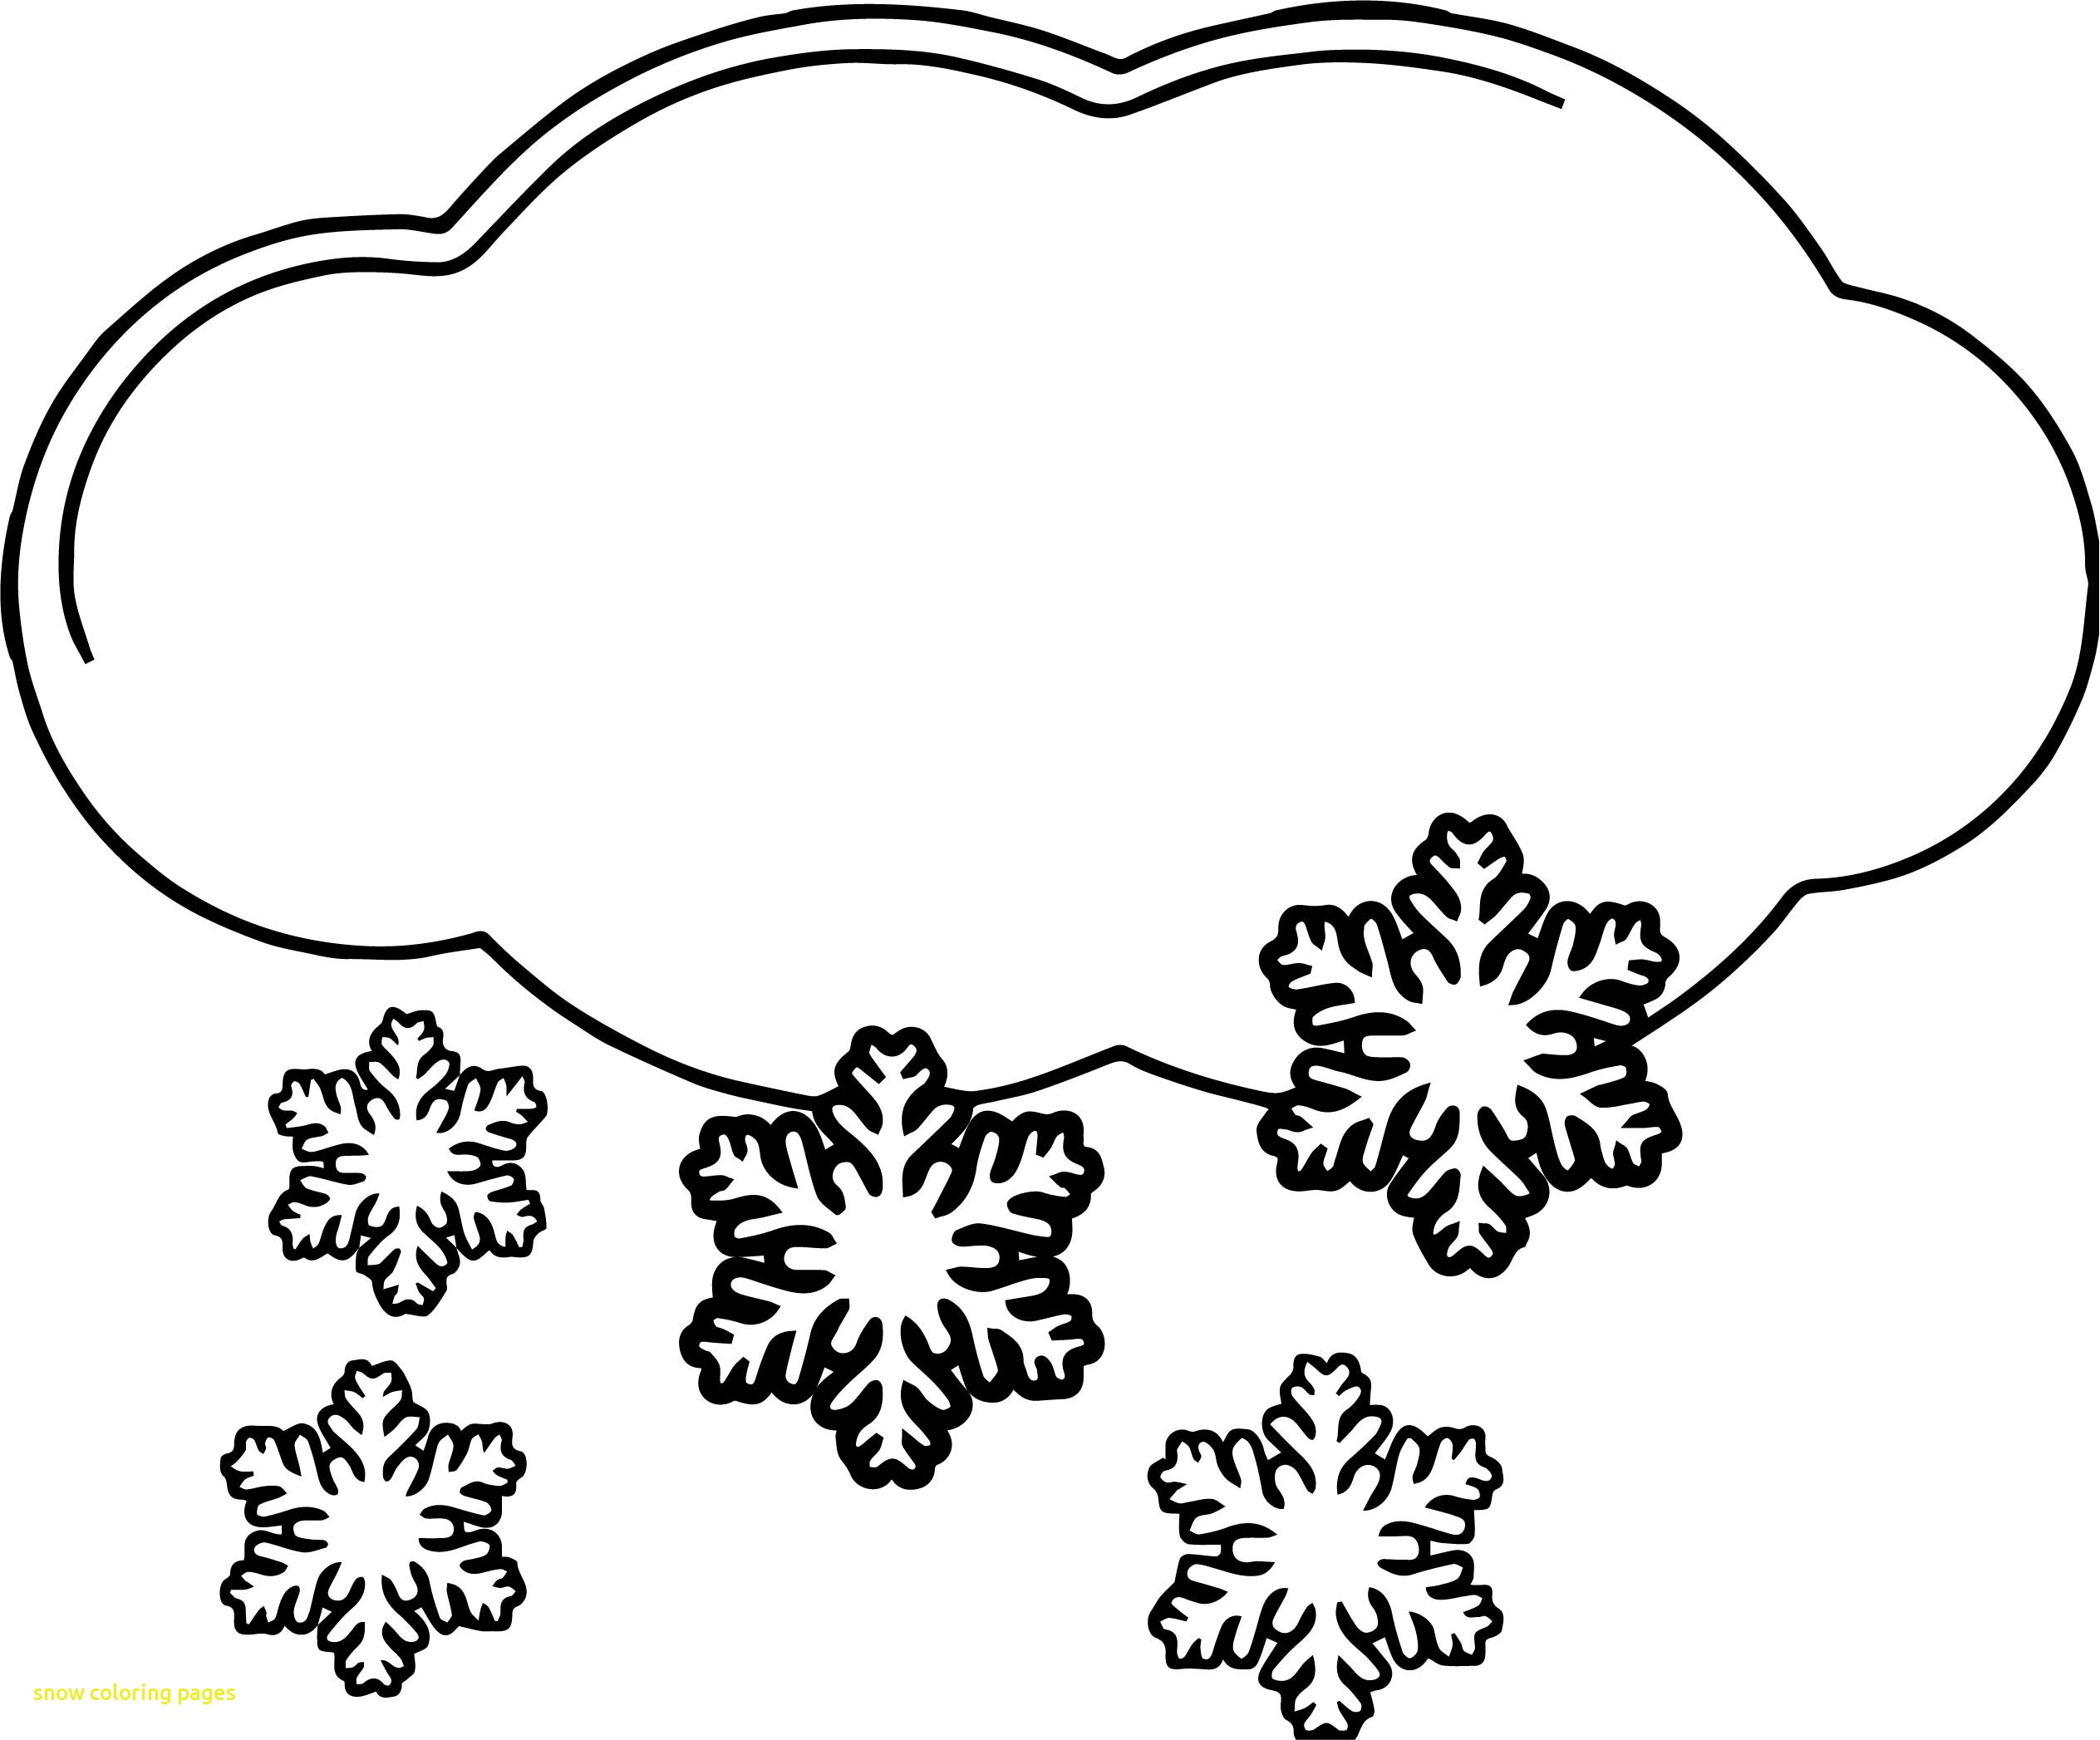 Snow Coloring Pages At Getcolorings